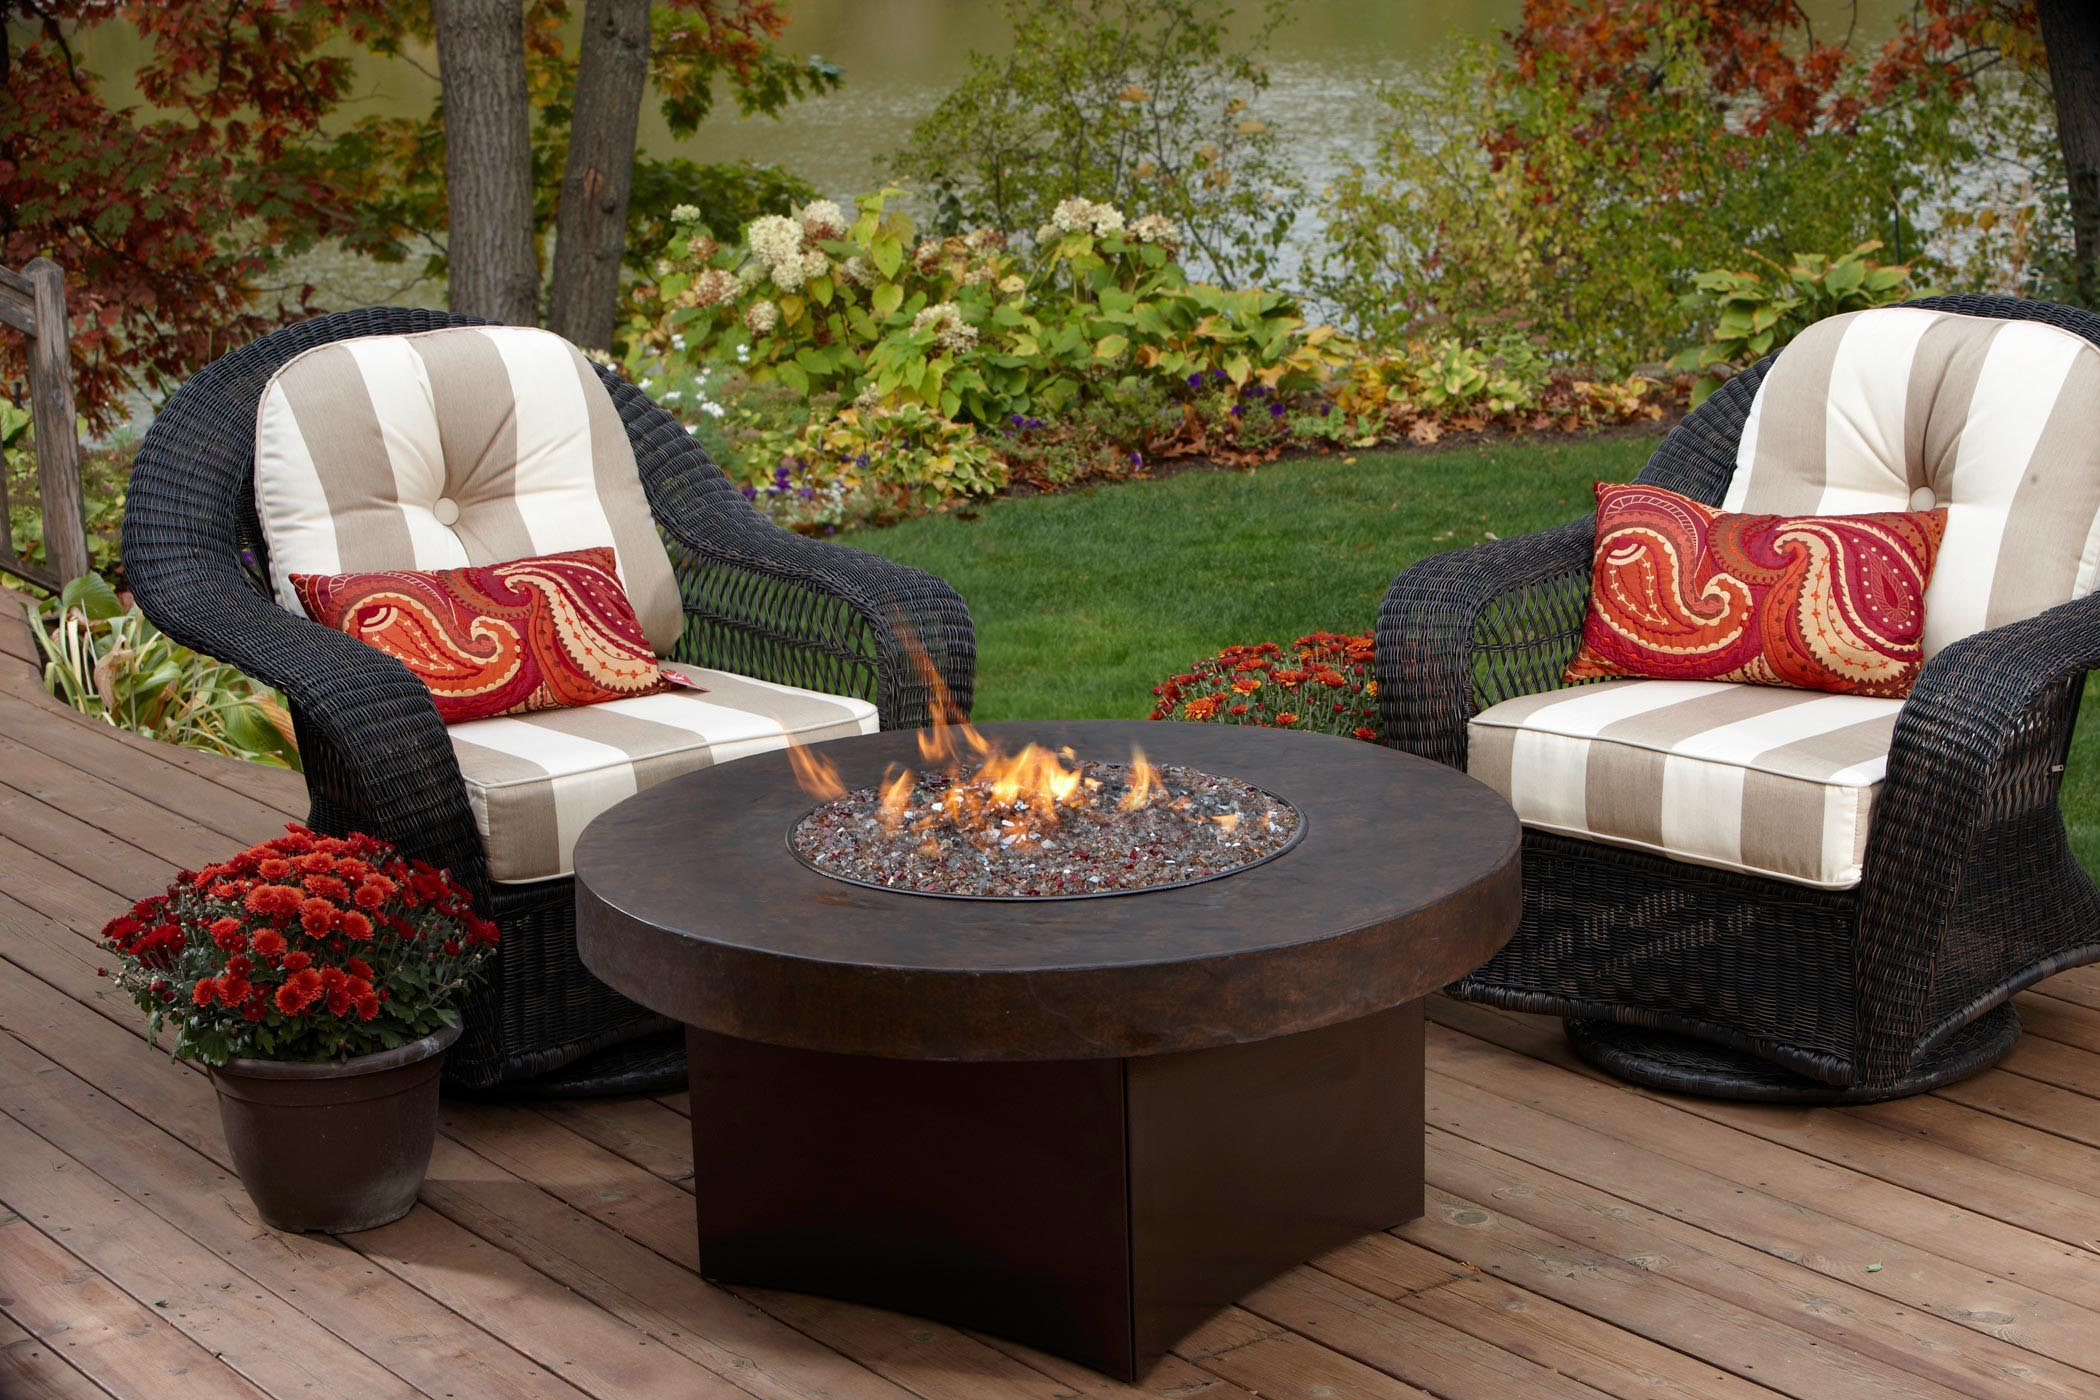 Outdoor Fire Pit Table and Chairs